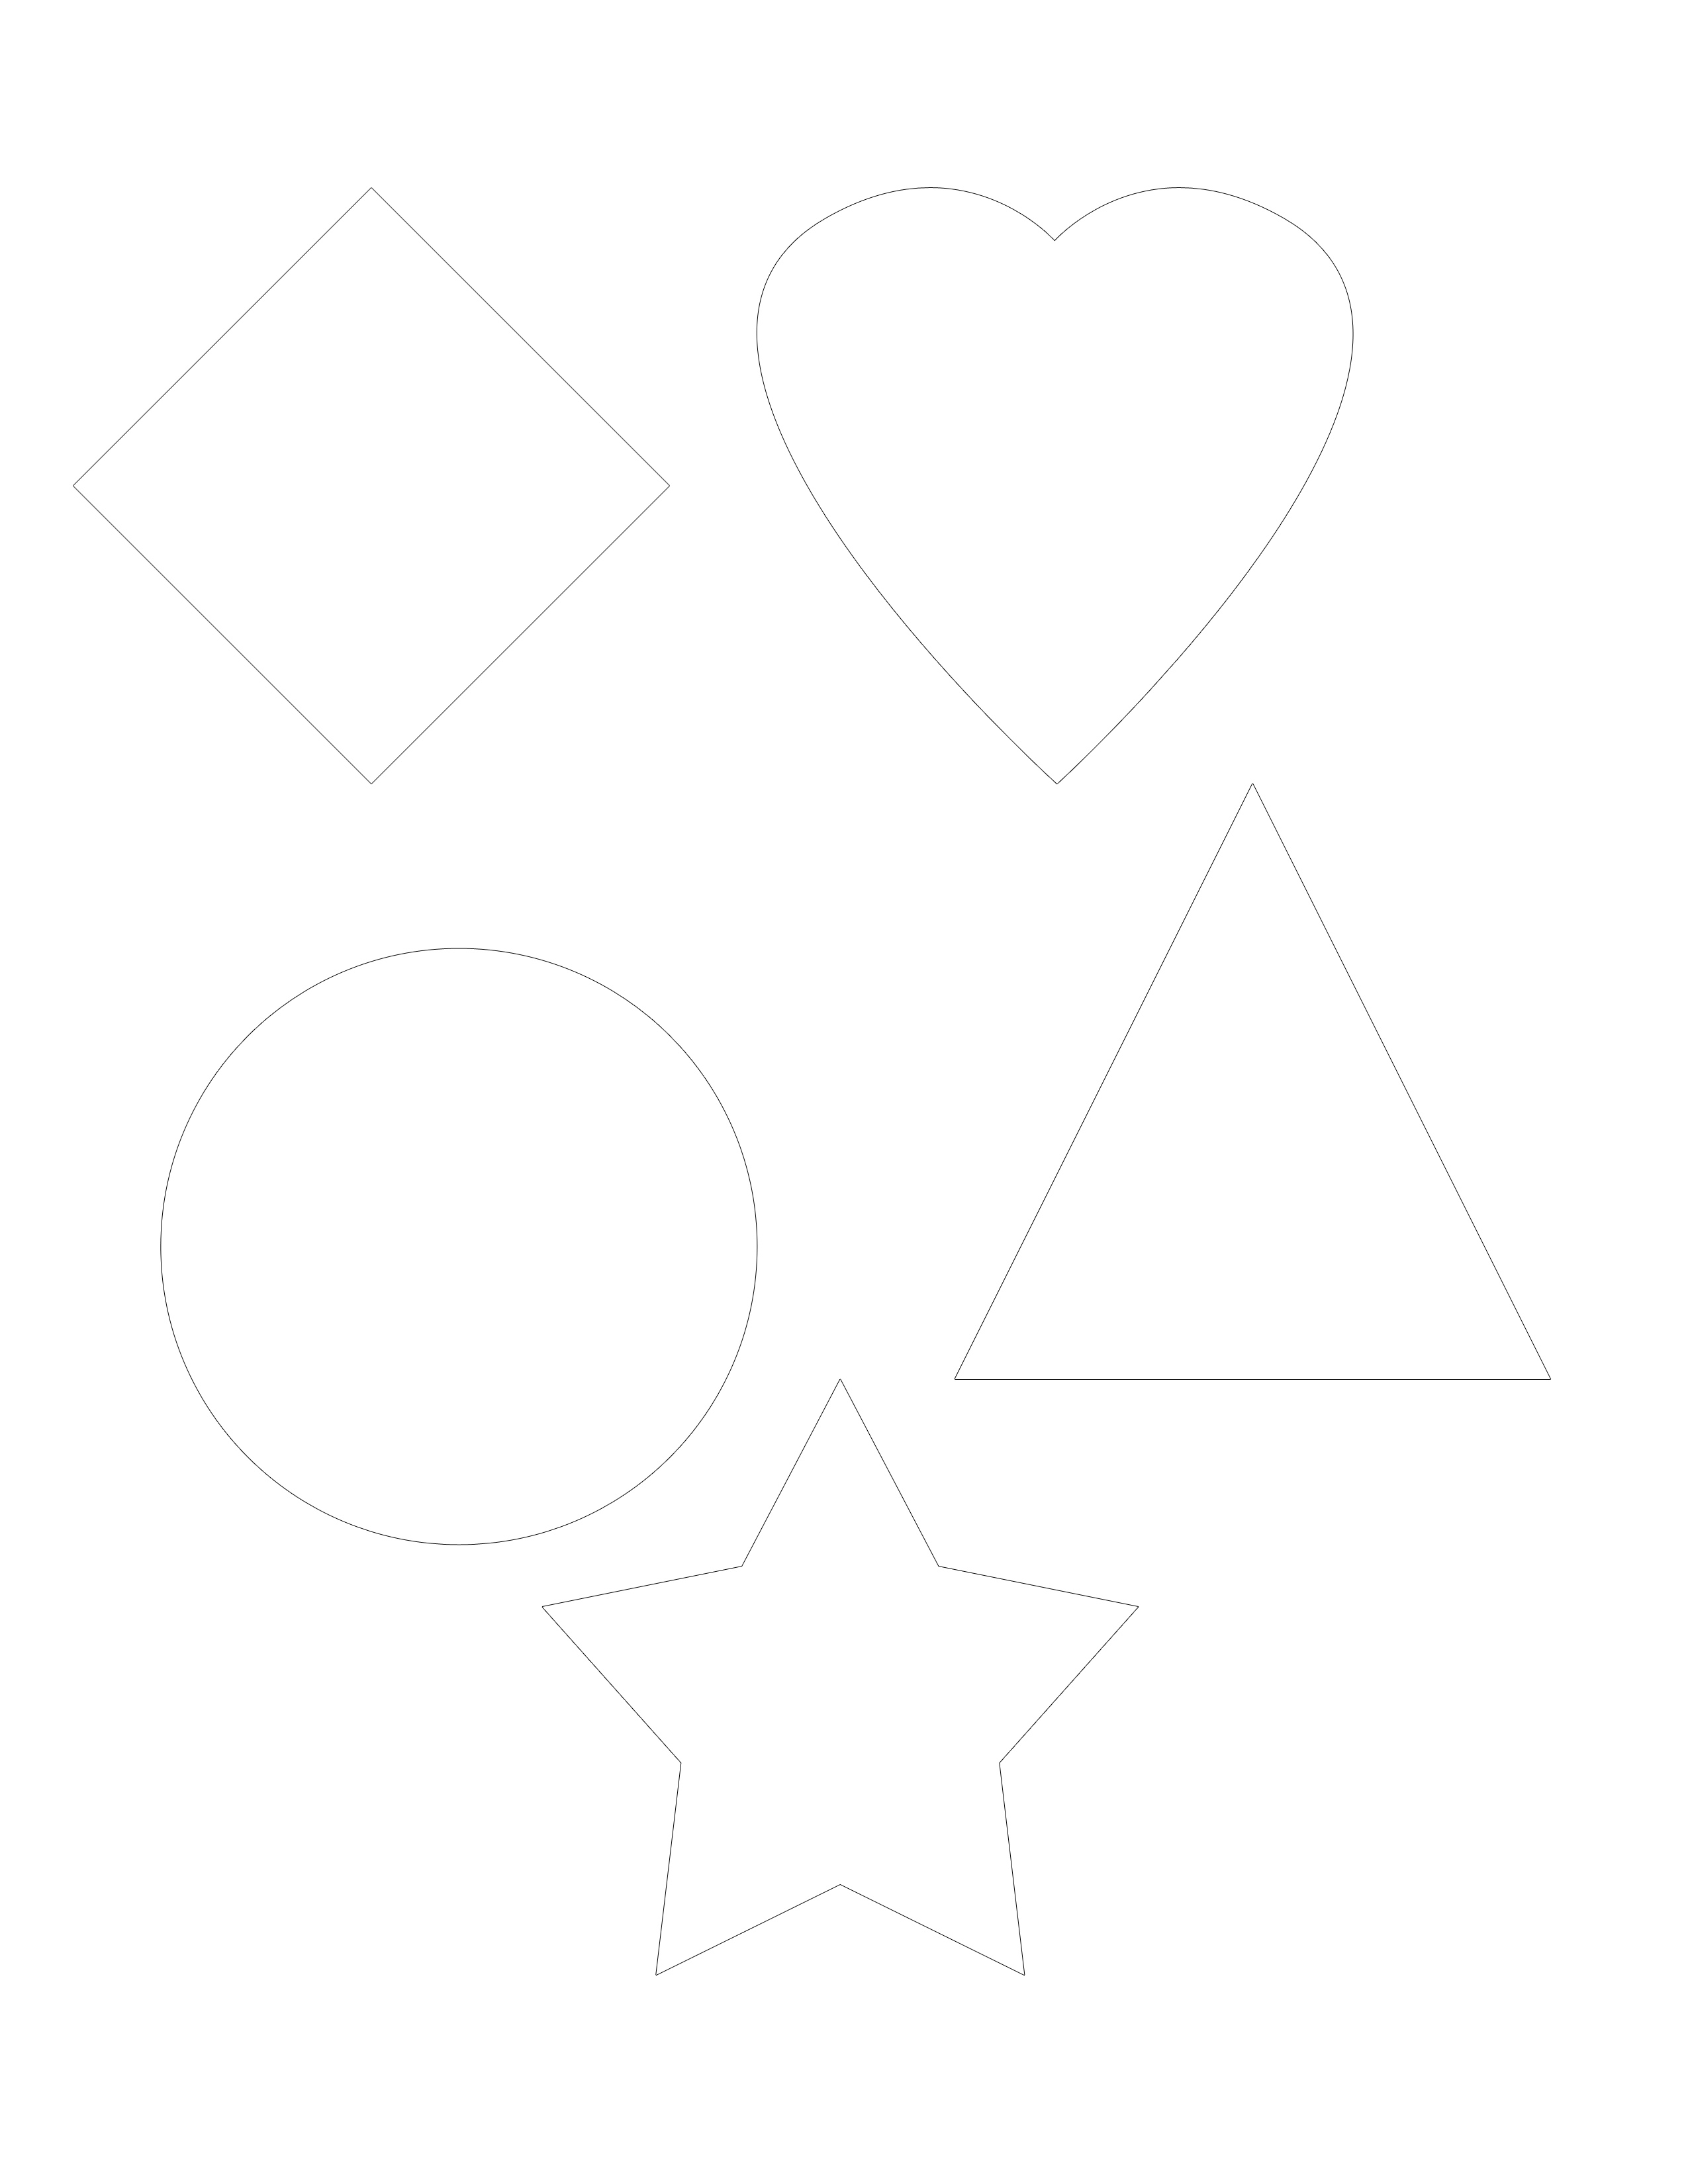 Shapes-template-printable-for-kids-activities-toddler-preschooler